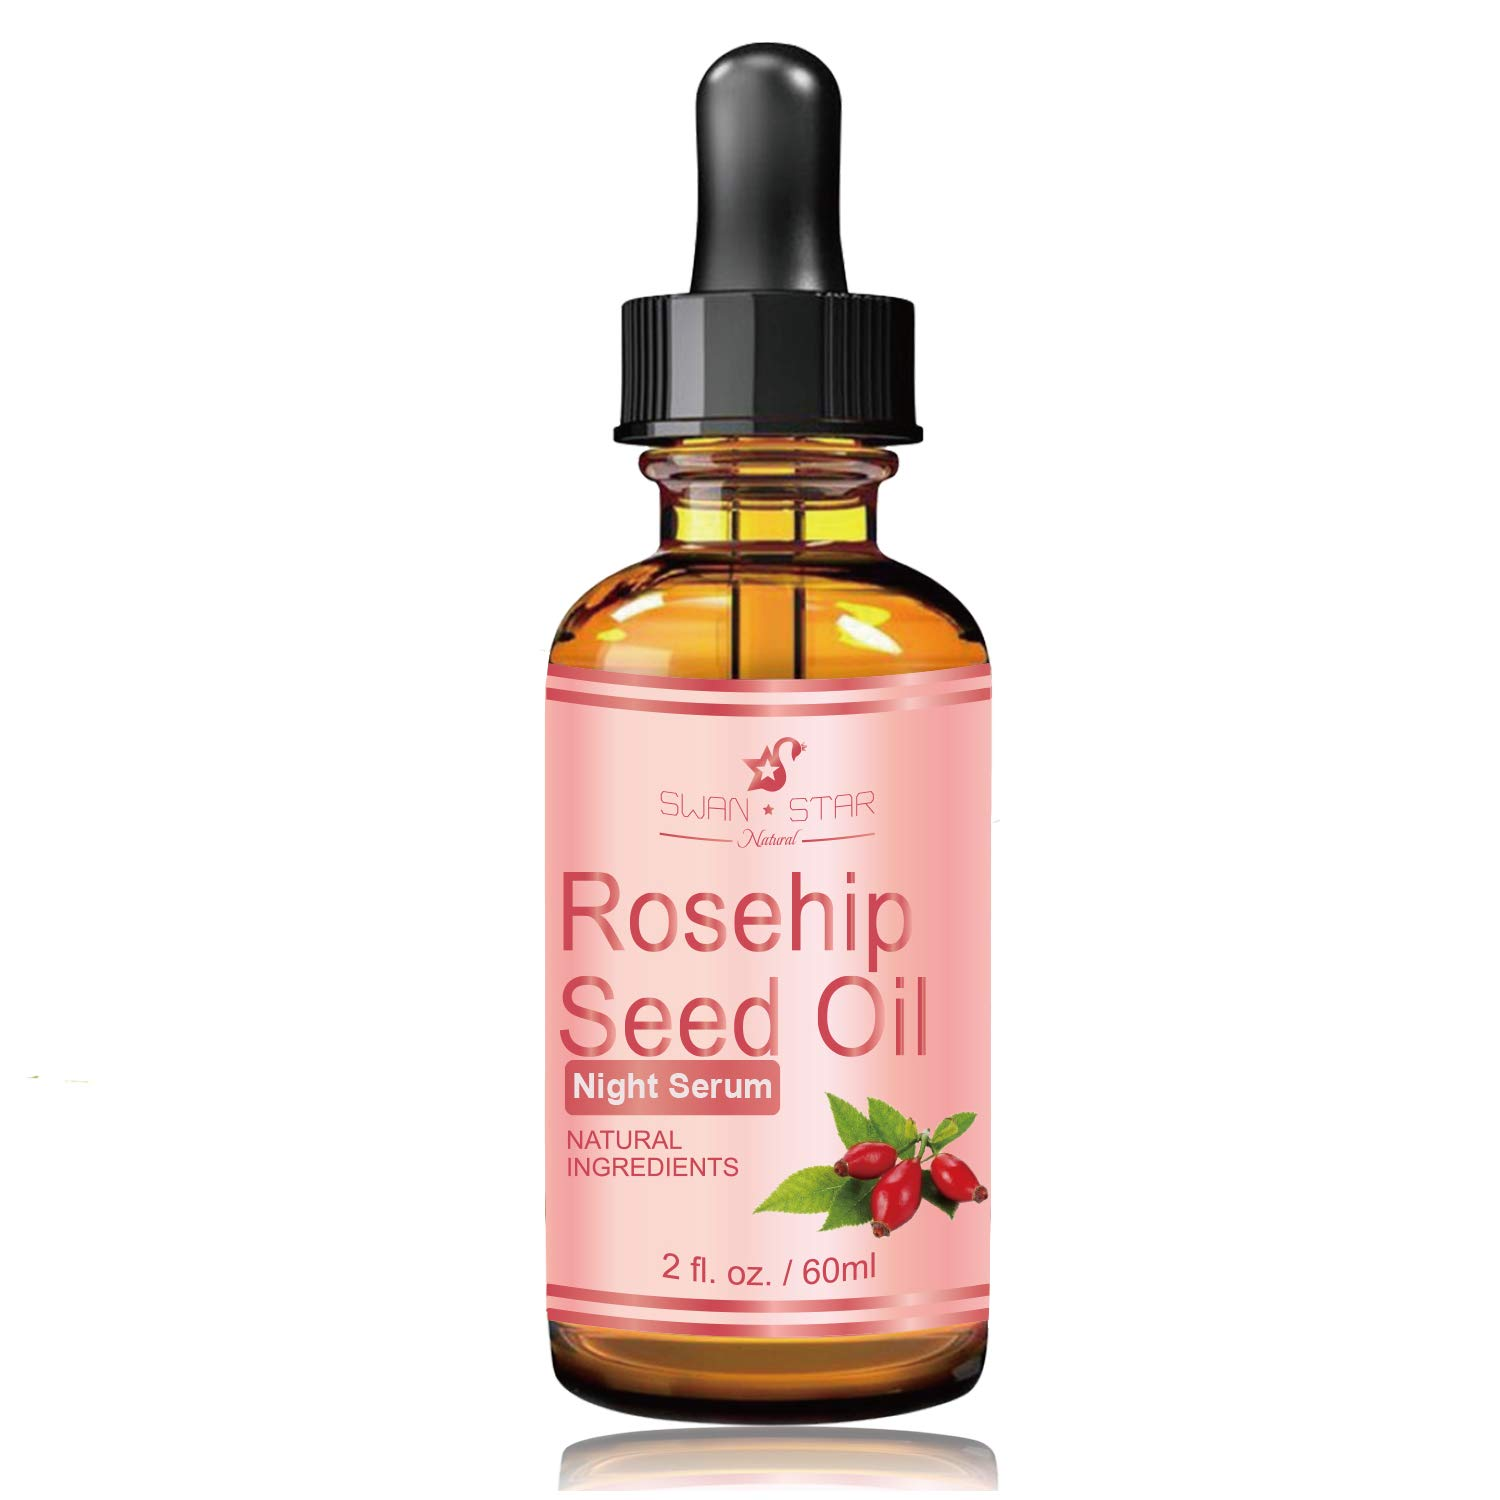 SWAN STAR Rosehip Seed Oil Serum For Face, Night Facial Skin Serum With Vitamin C, 100% Pure Natural Anti Aging Moisturizer 2 OZ